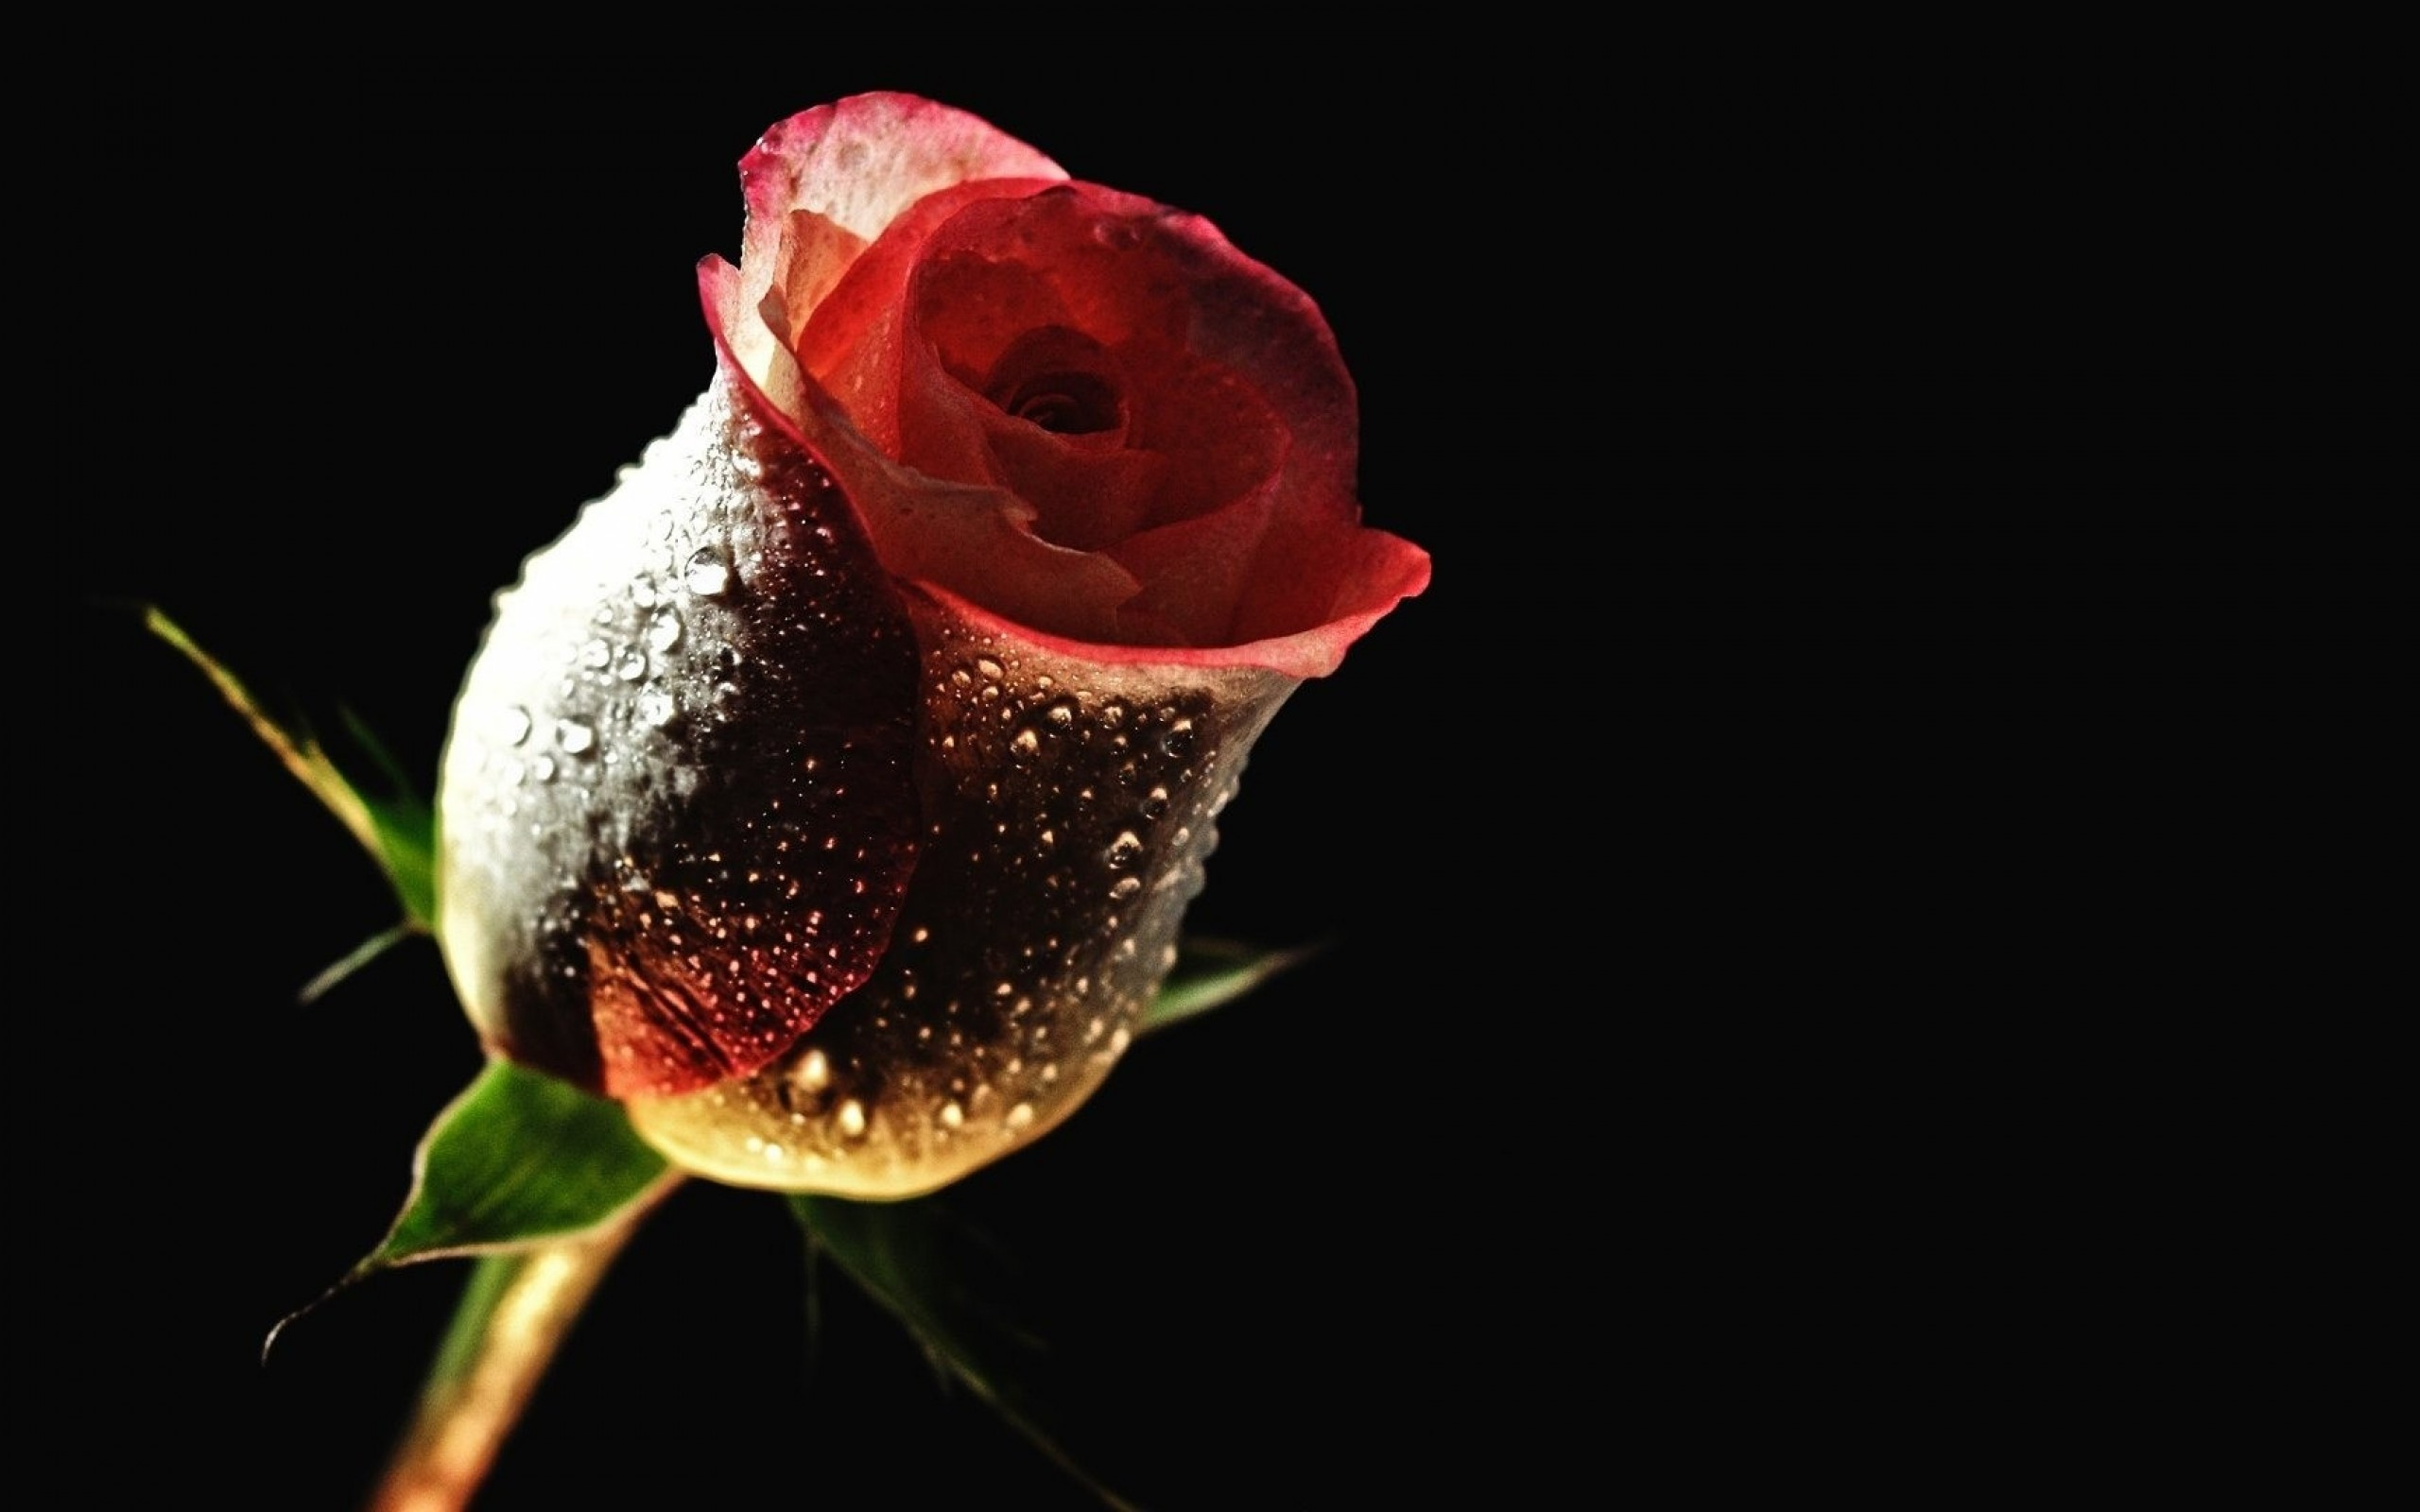 Hd wallpaper rose - Black Rose Wallpapers